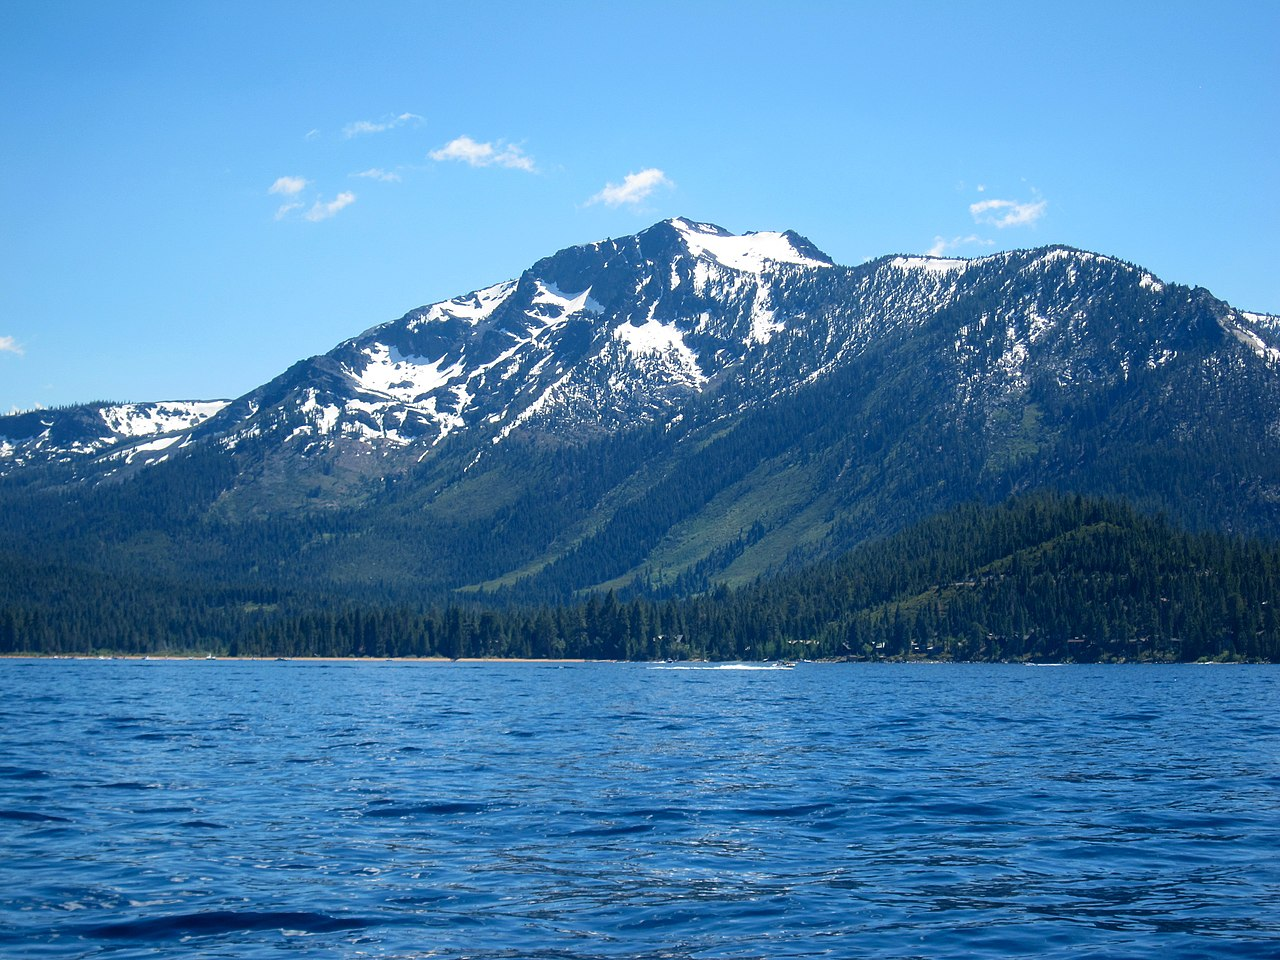 history of lake tahoe A brief history of the lake tahoe geology: part i: creation of the sierra rock: the geologic history of lake tahoe began nearly 400 million years ago when a shallow sea covered the area that is now the sierra nevada mountains.